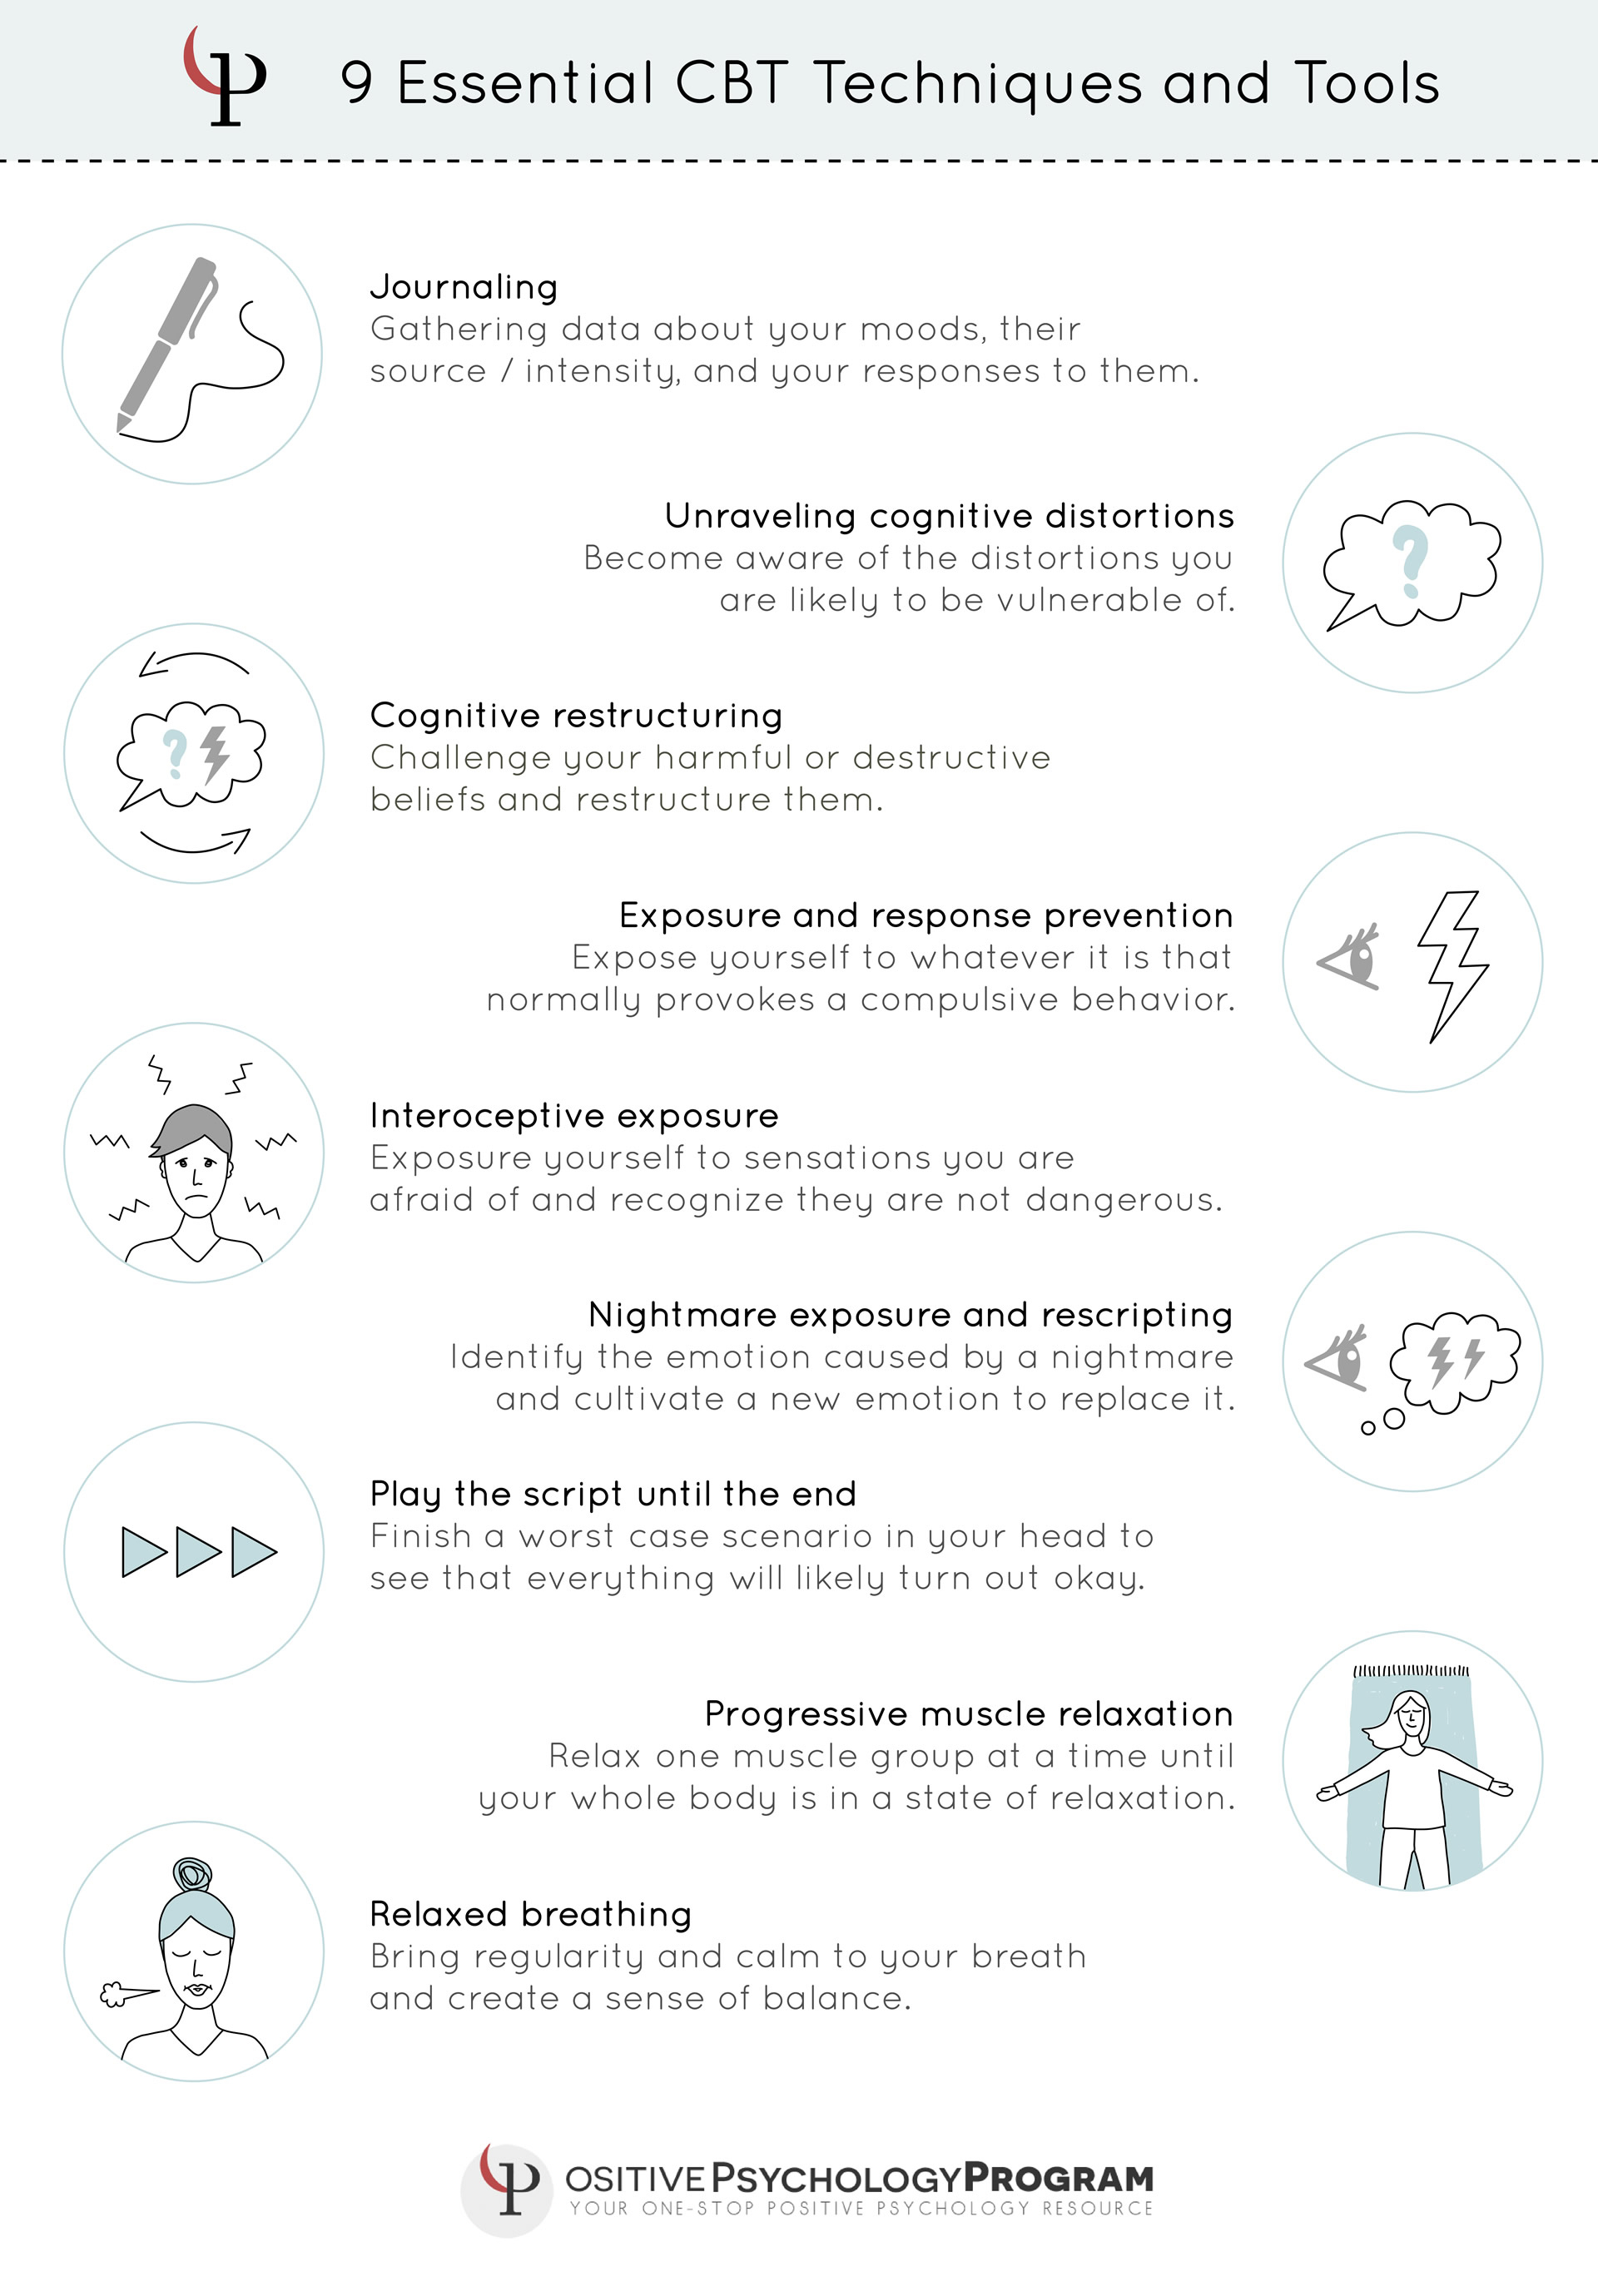 25 Cbt Techniques And Worksheets For Cognitive Behavioral Therapy | Printable Mental Health Worksheets